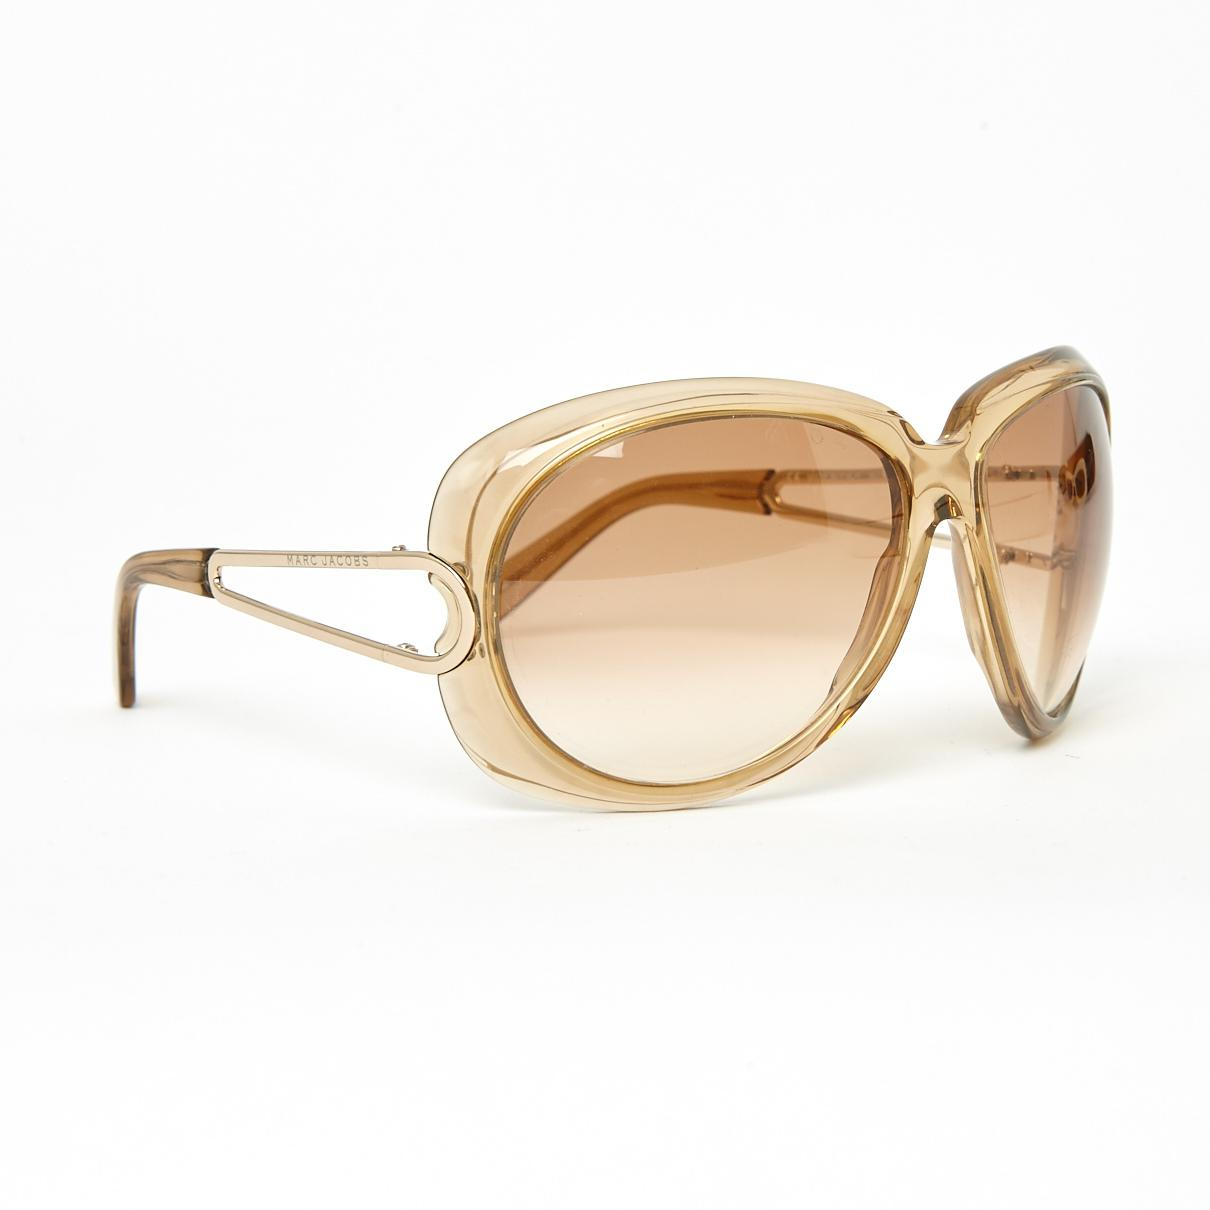 Marc Jacobs Sunglasses in Pink